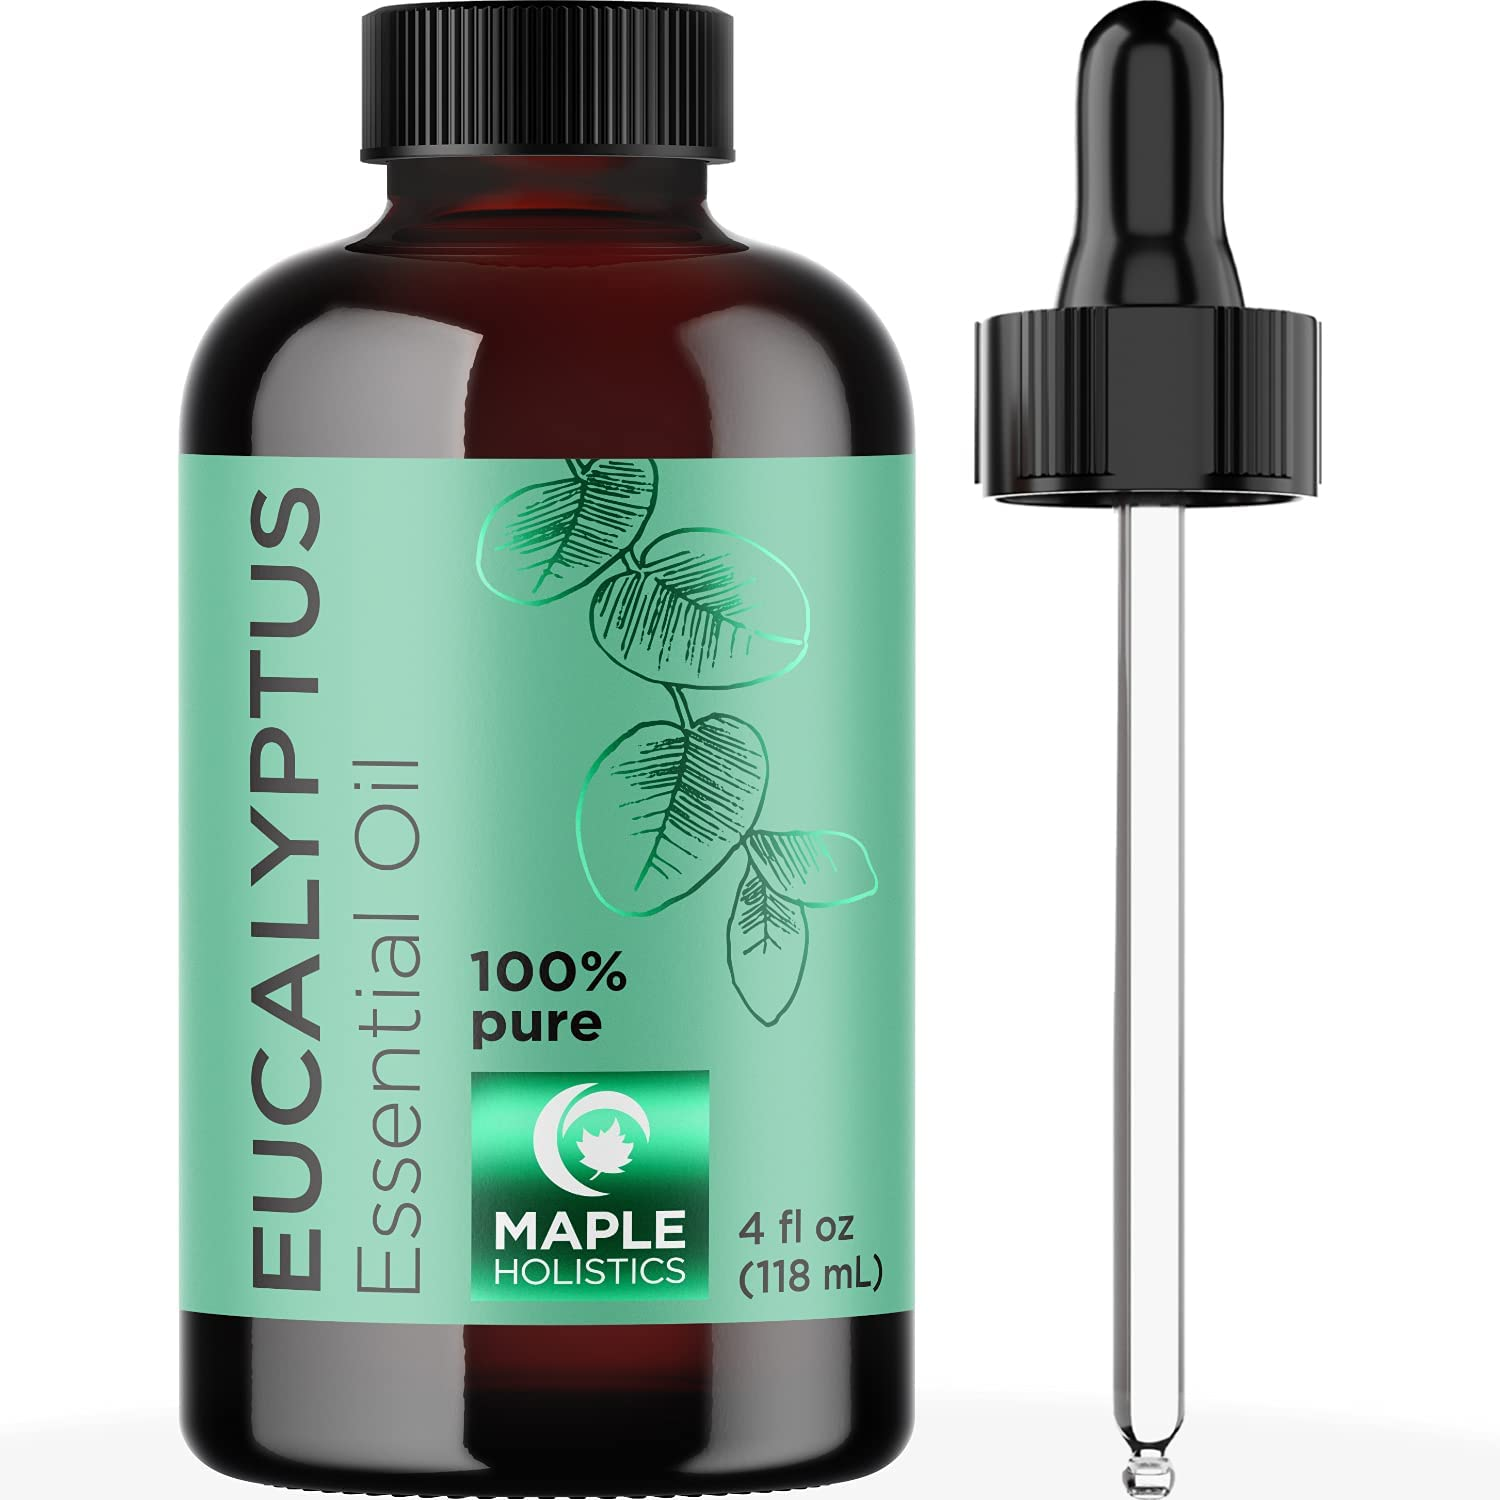 Eucalyptus Essential Oil 4 Oz - Invigorating Eucalyptus Oil for Diffuser Dry Scalp Care and DIY Skin Care - Real Eucalyptus Essential Oils for Diffusers for Home Spa Aromatherapy and Natural Bath Oil